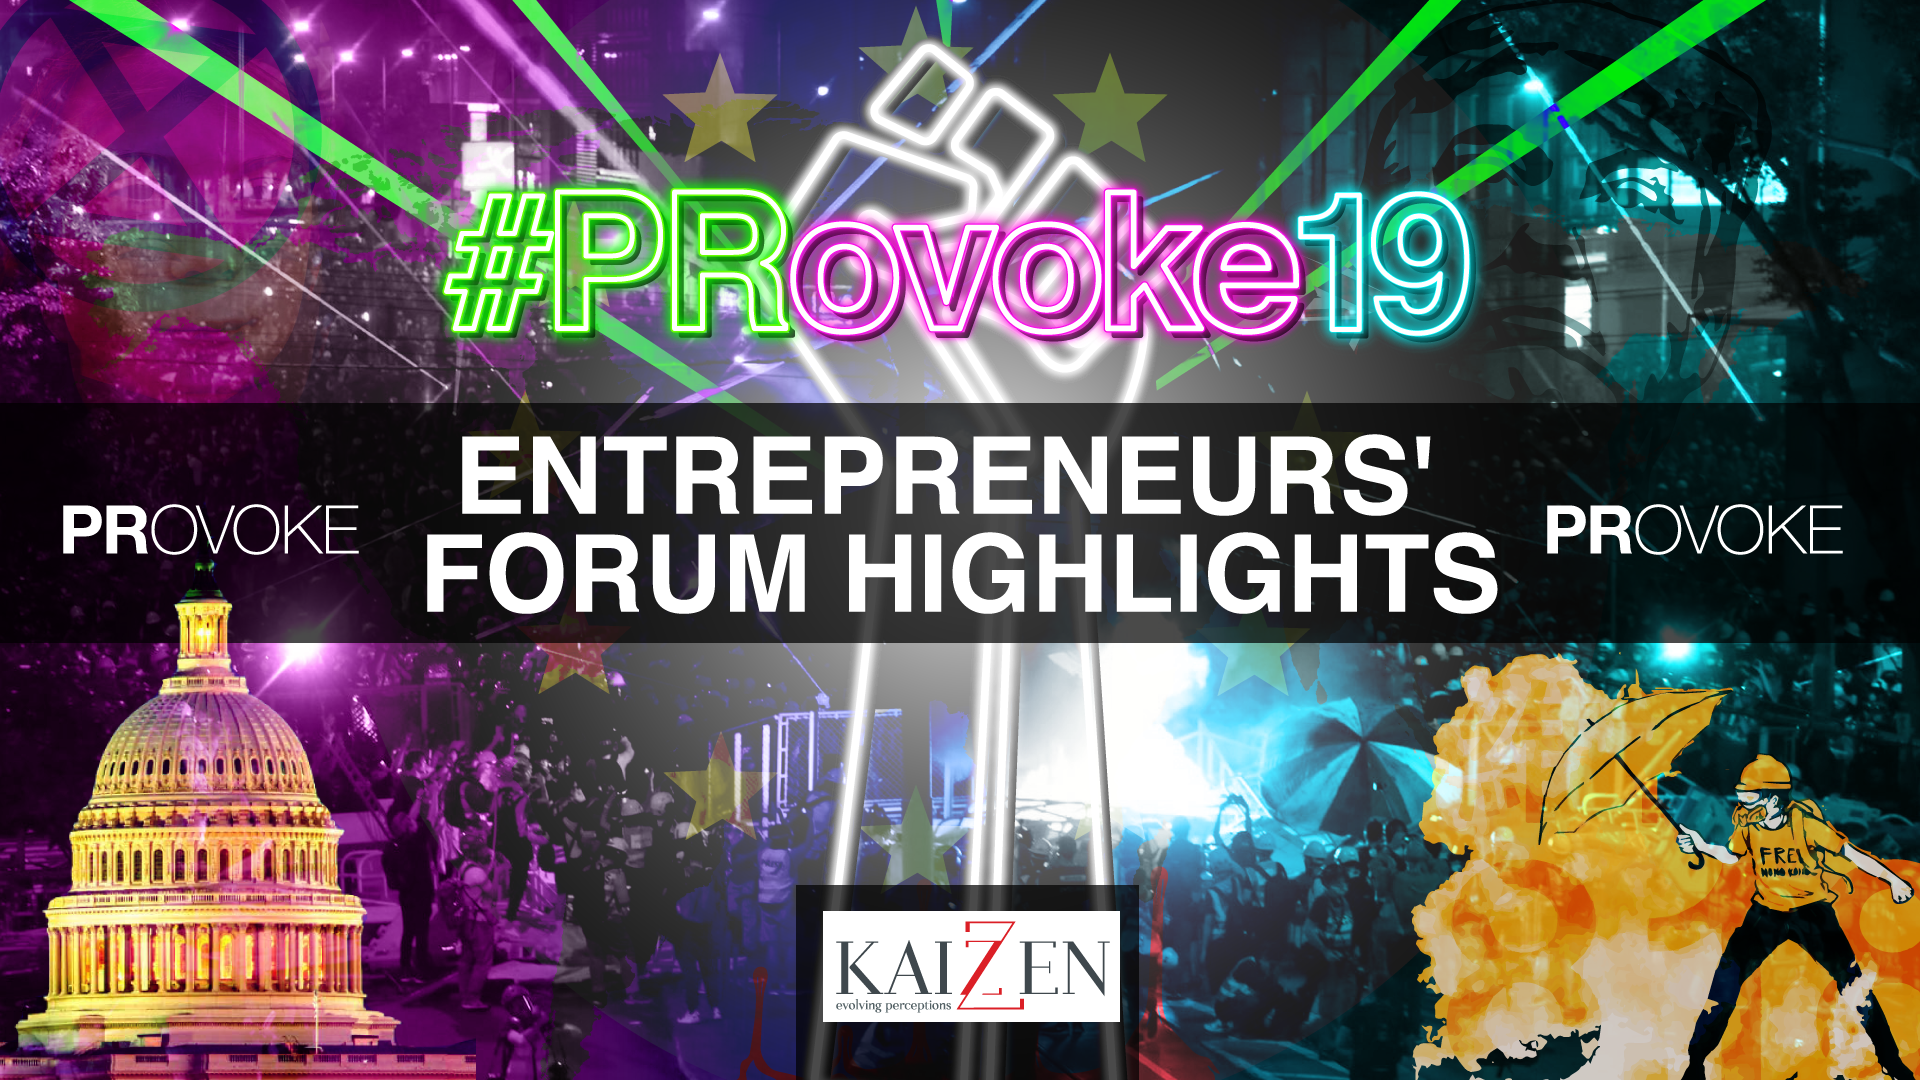 Video: PRovoke19 Entrepreneurs' Forum Highlights